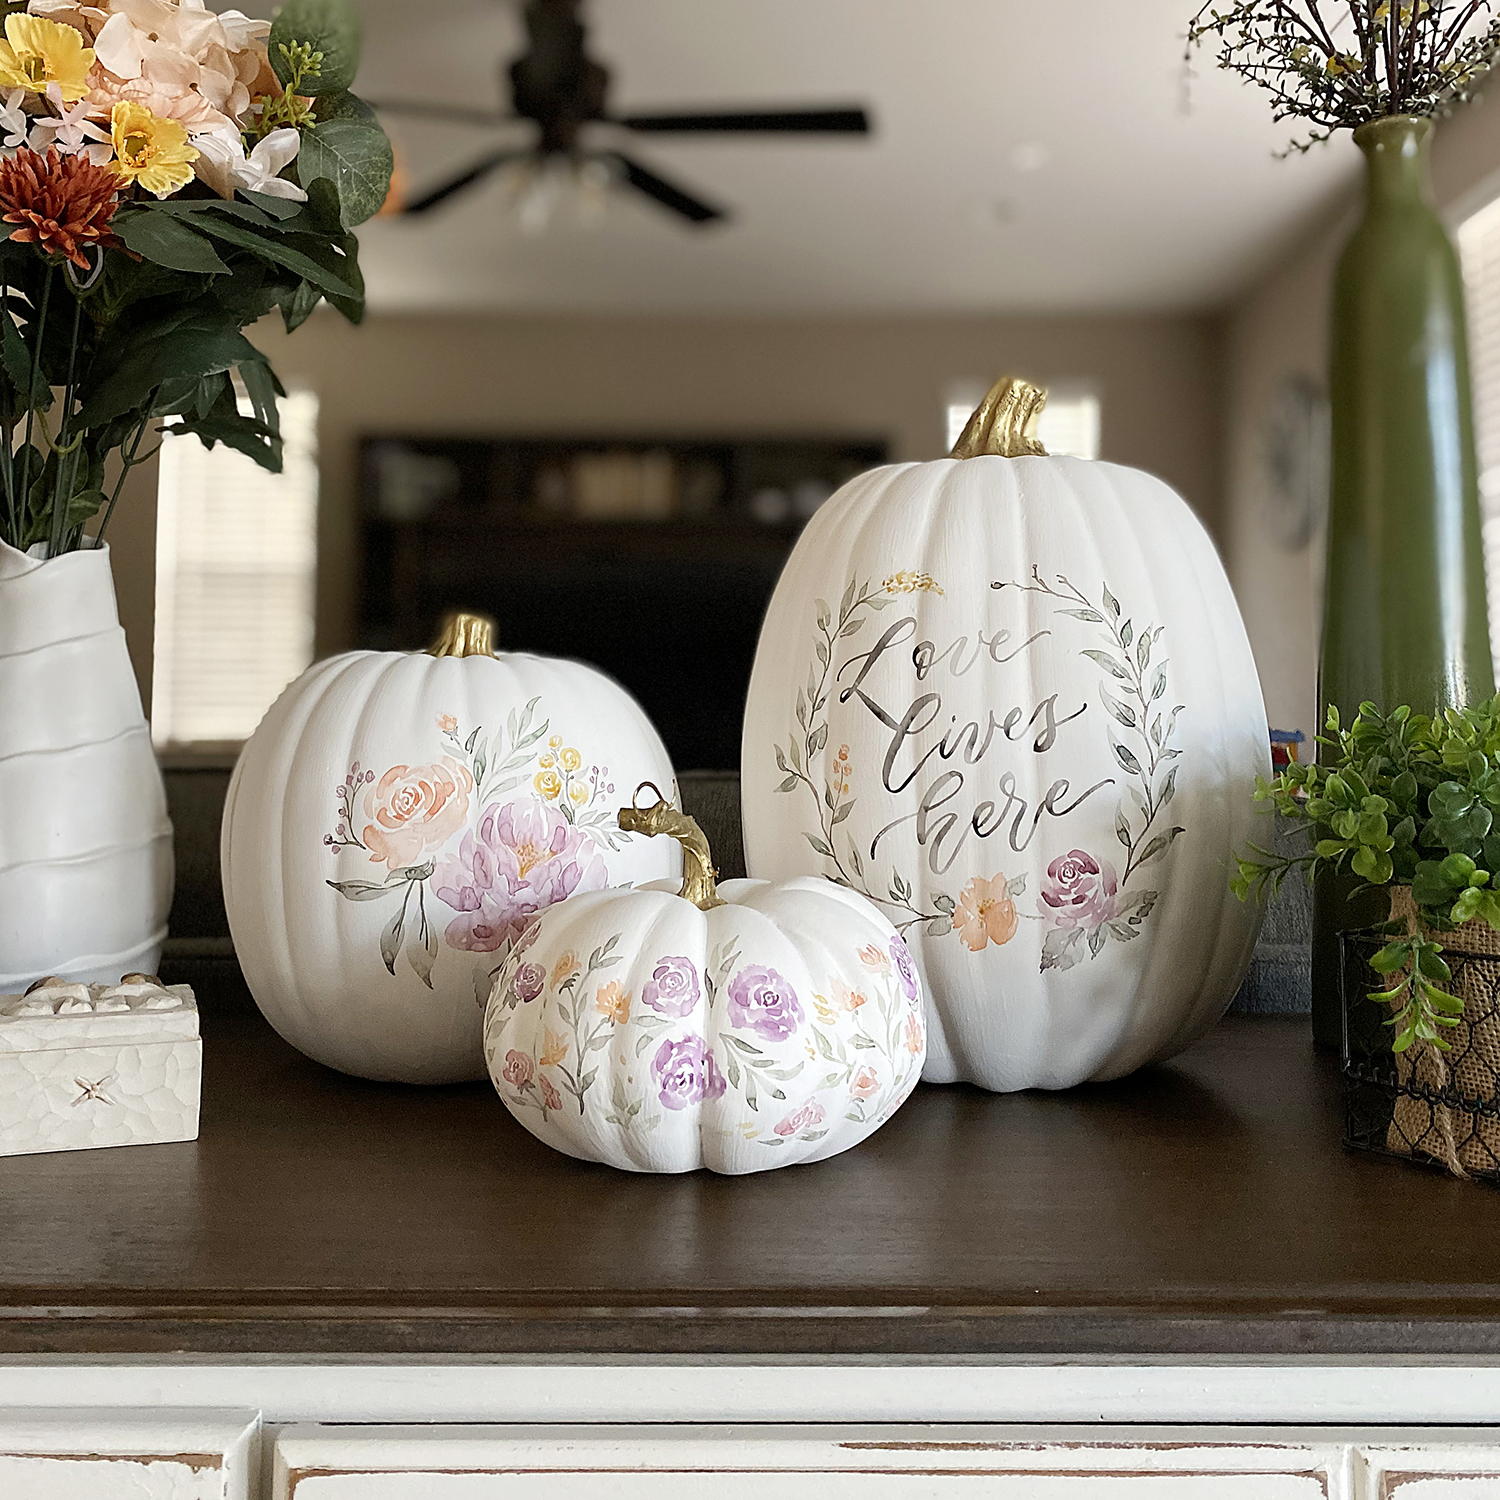 Handpainted Watercolor Floral Craft White Pumpkins for Fall Thanksgiving Decor by Sam Allen Creates